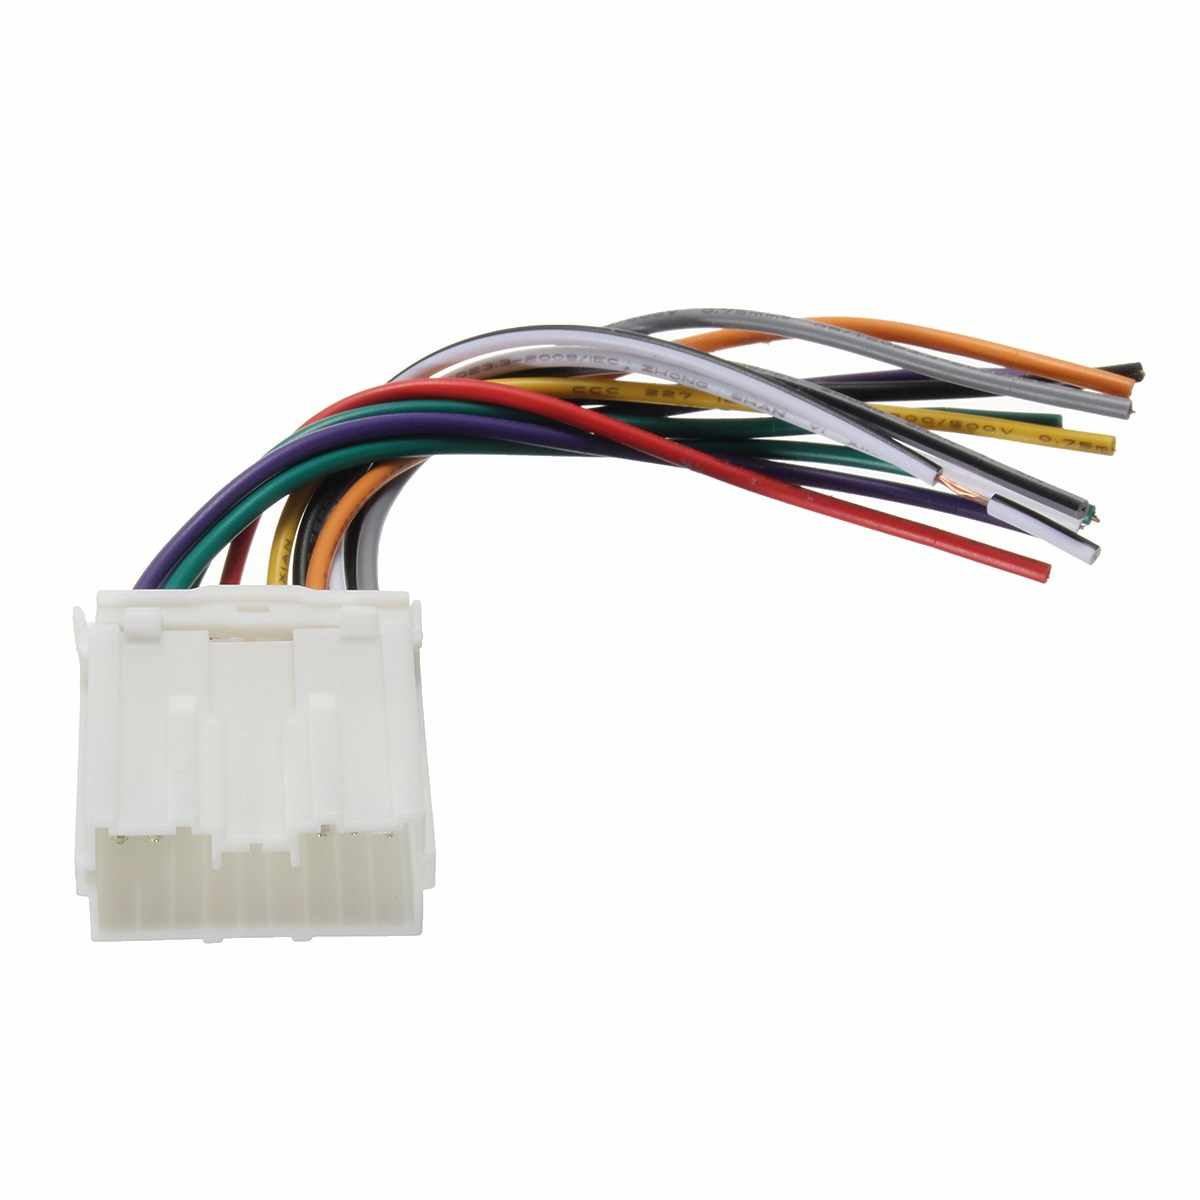 medium resolution of kroak car stereo radio cd player wiring harness wire aftermarket for mitsubishi dwh612